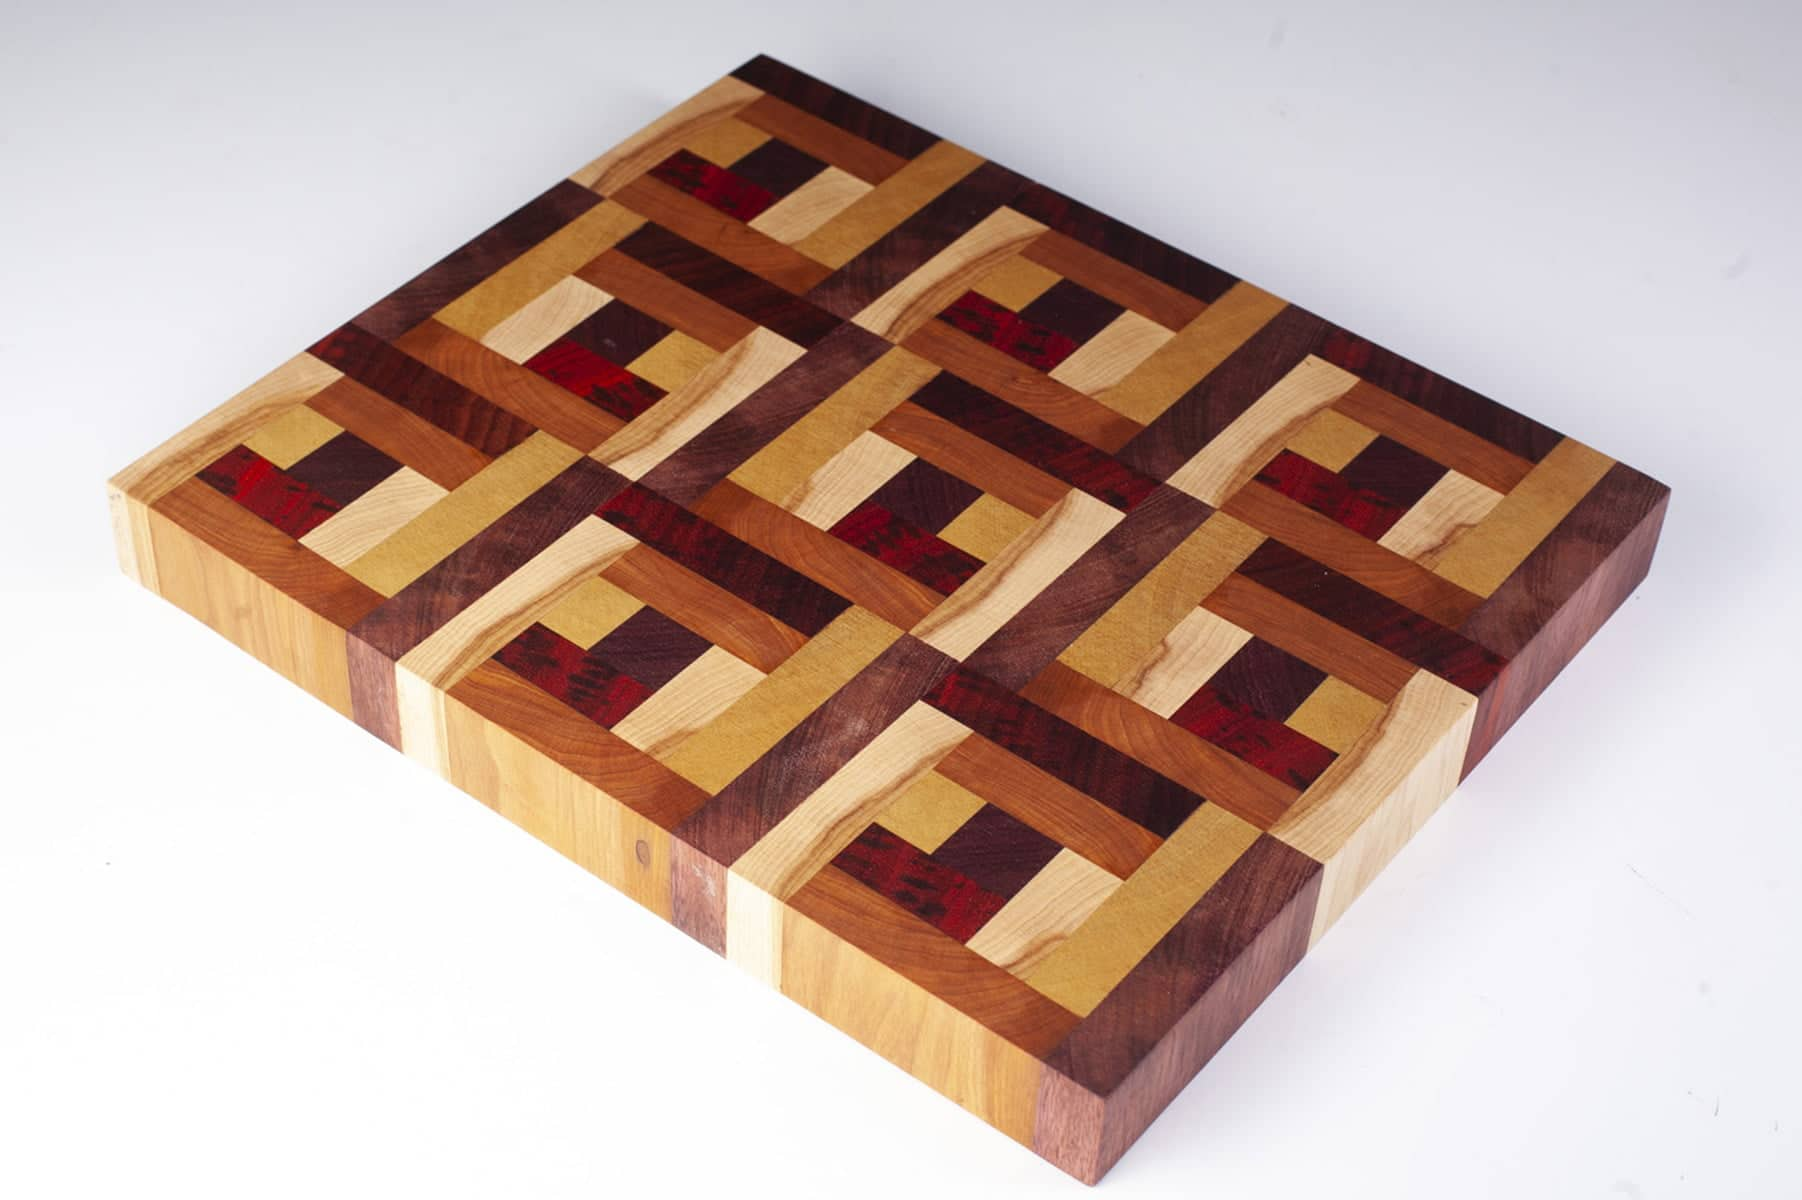 Close up image of a fancy cutting board made of many small pieces of multicoloured wood.